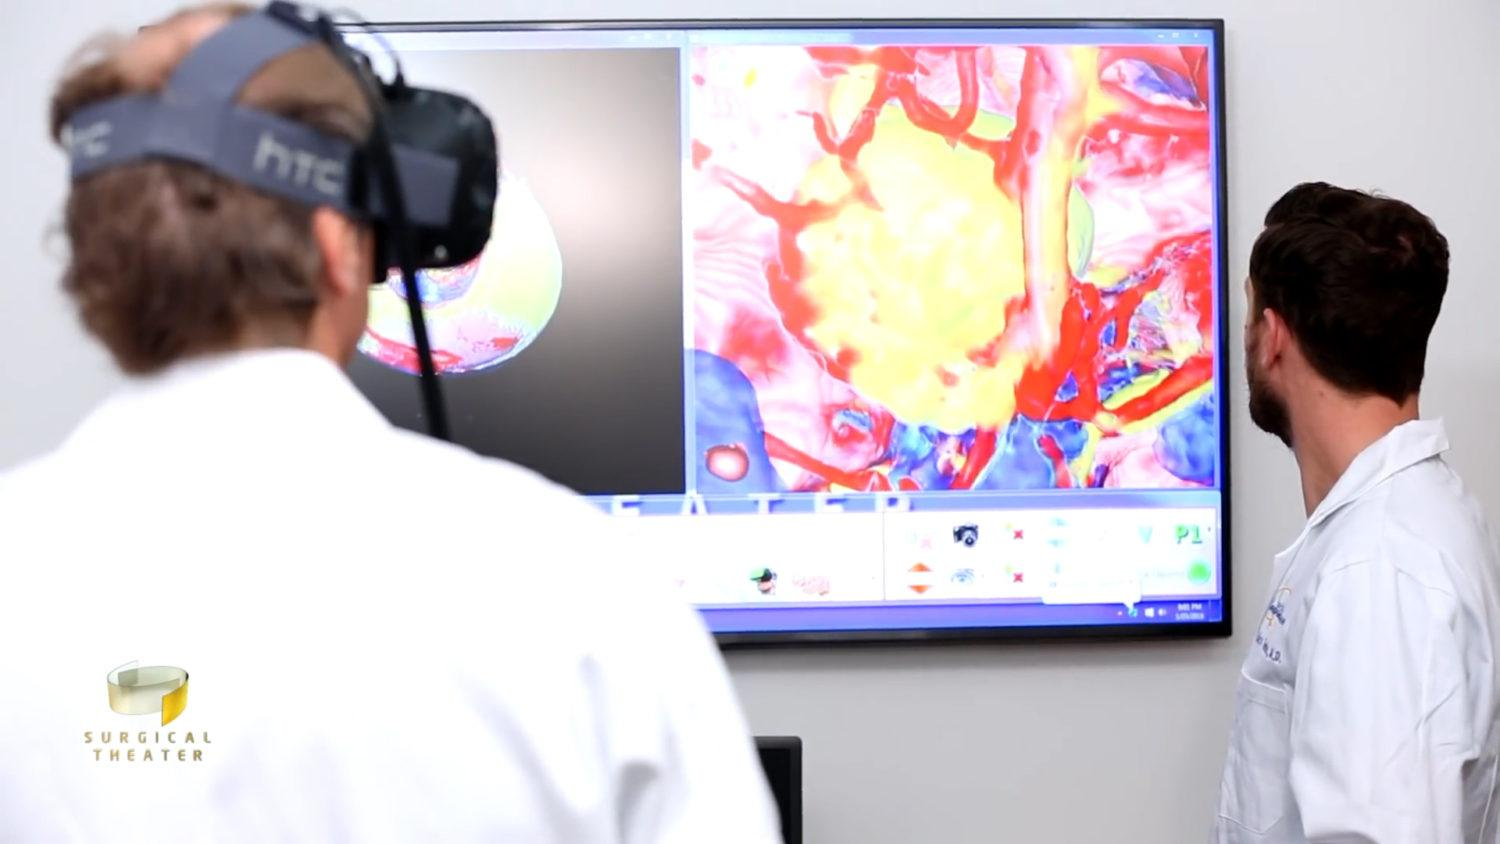 Surgical-Theater-Virtual Reality Platform